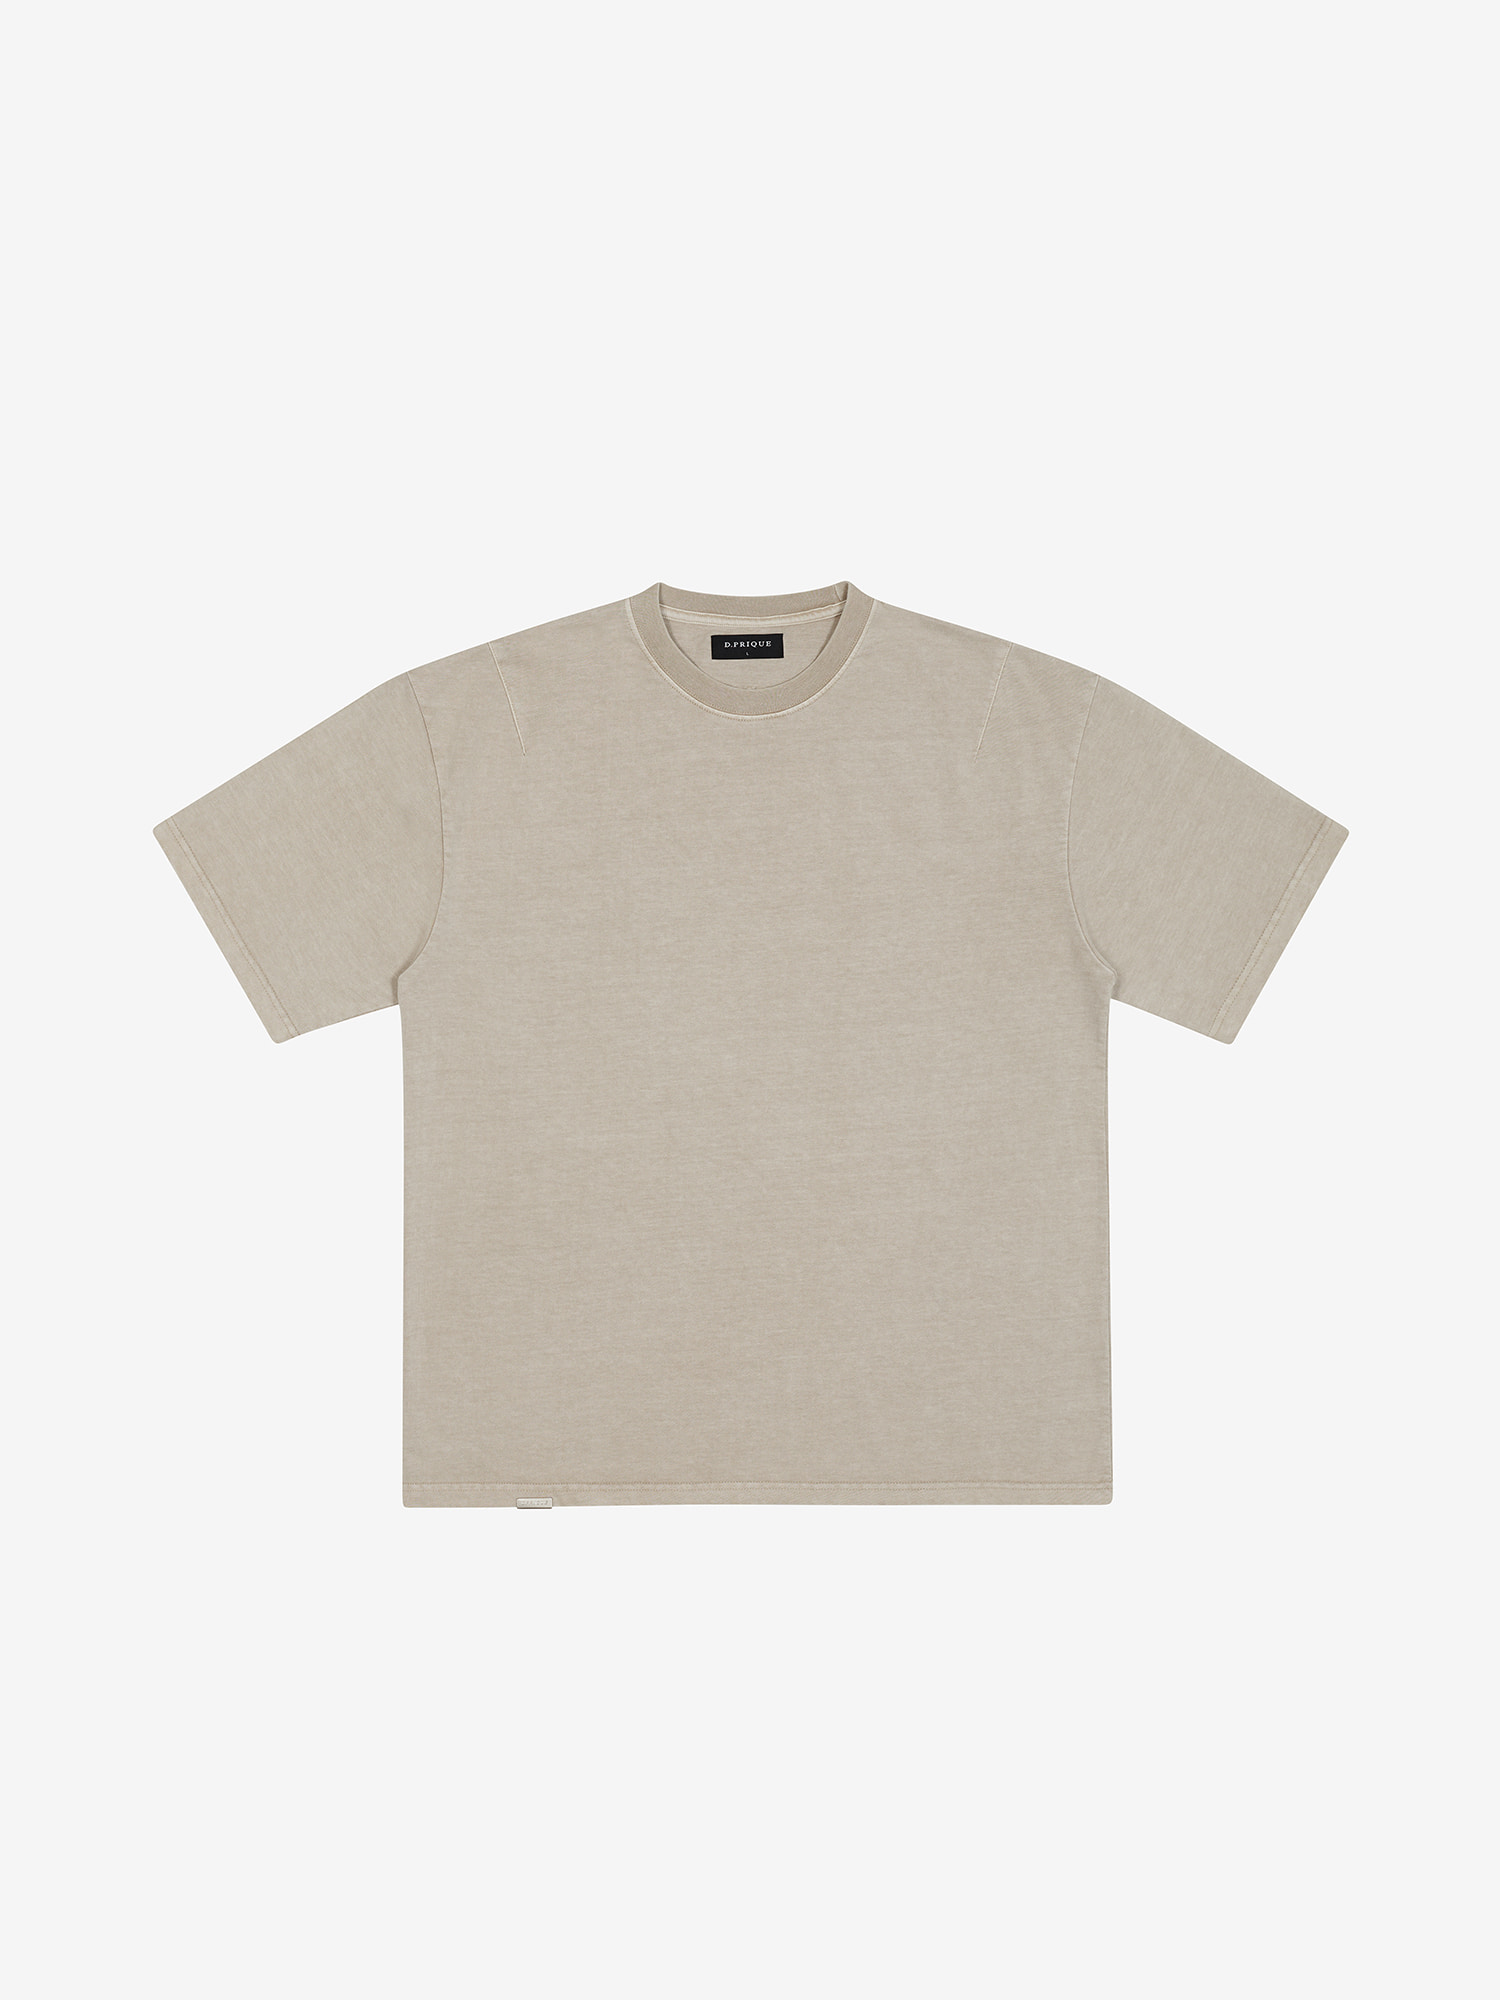 CLASSIC T-SHIRT - WASHED BEIGE